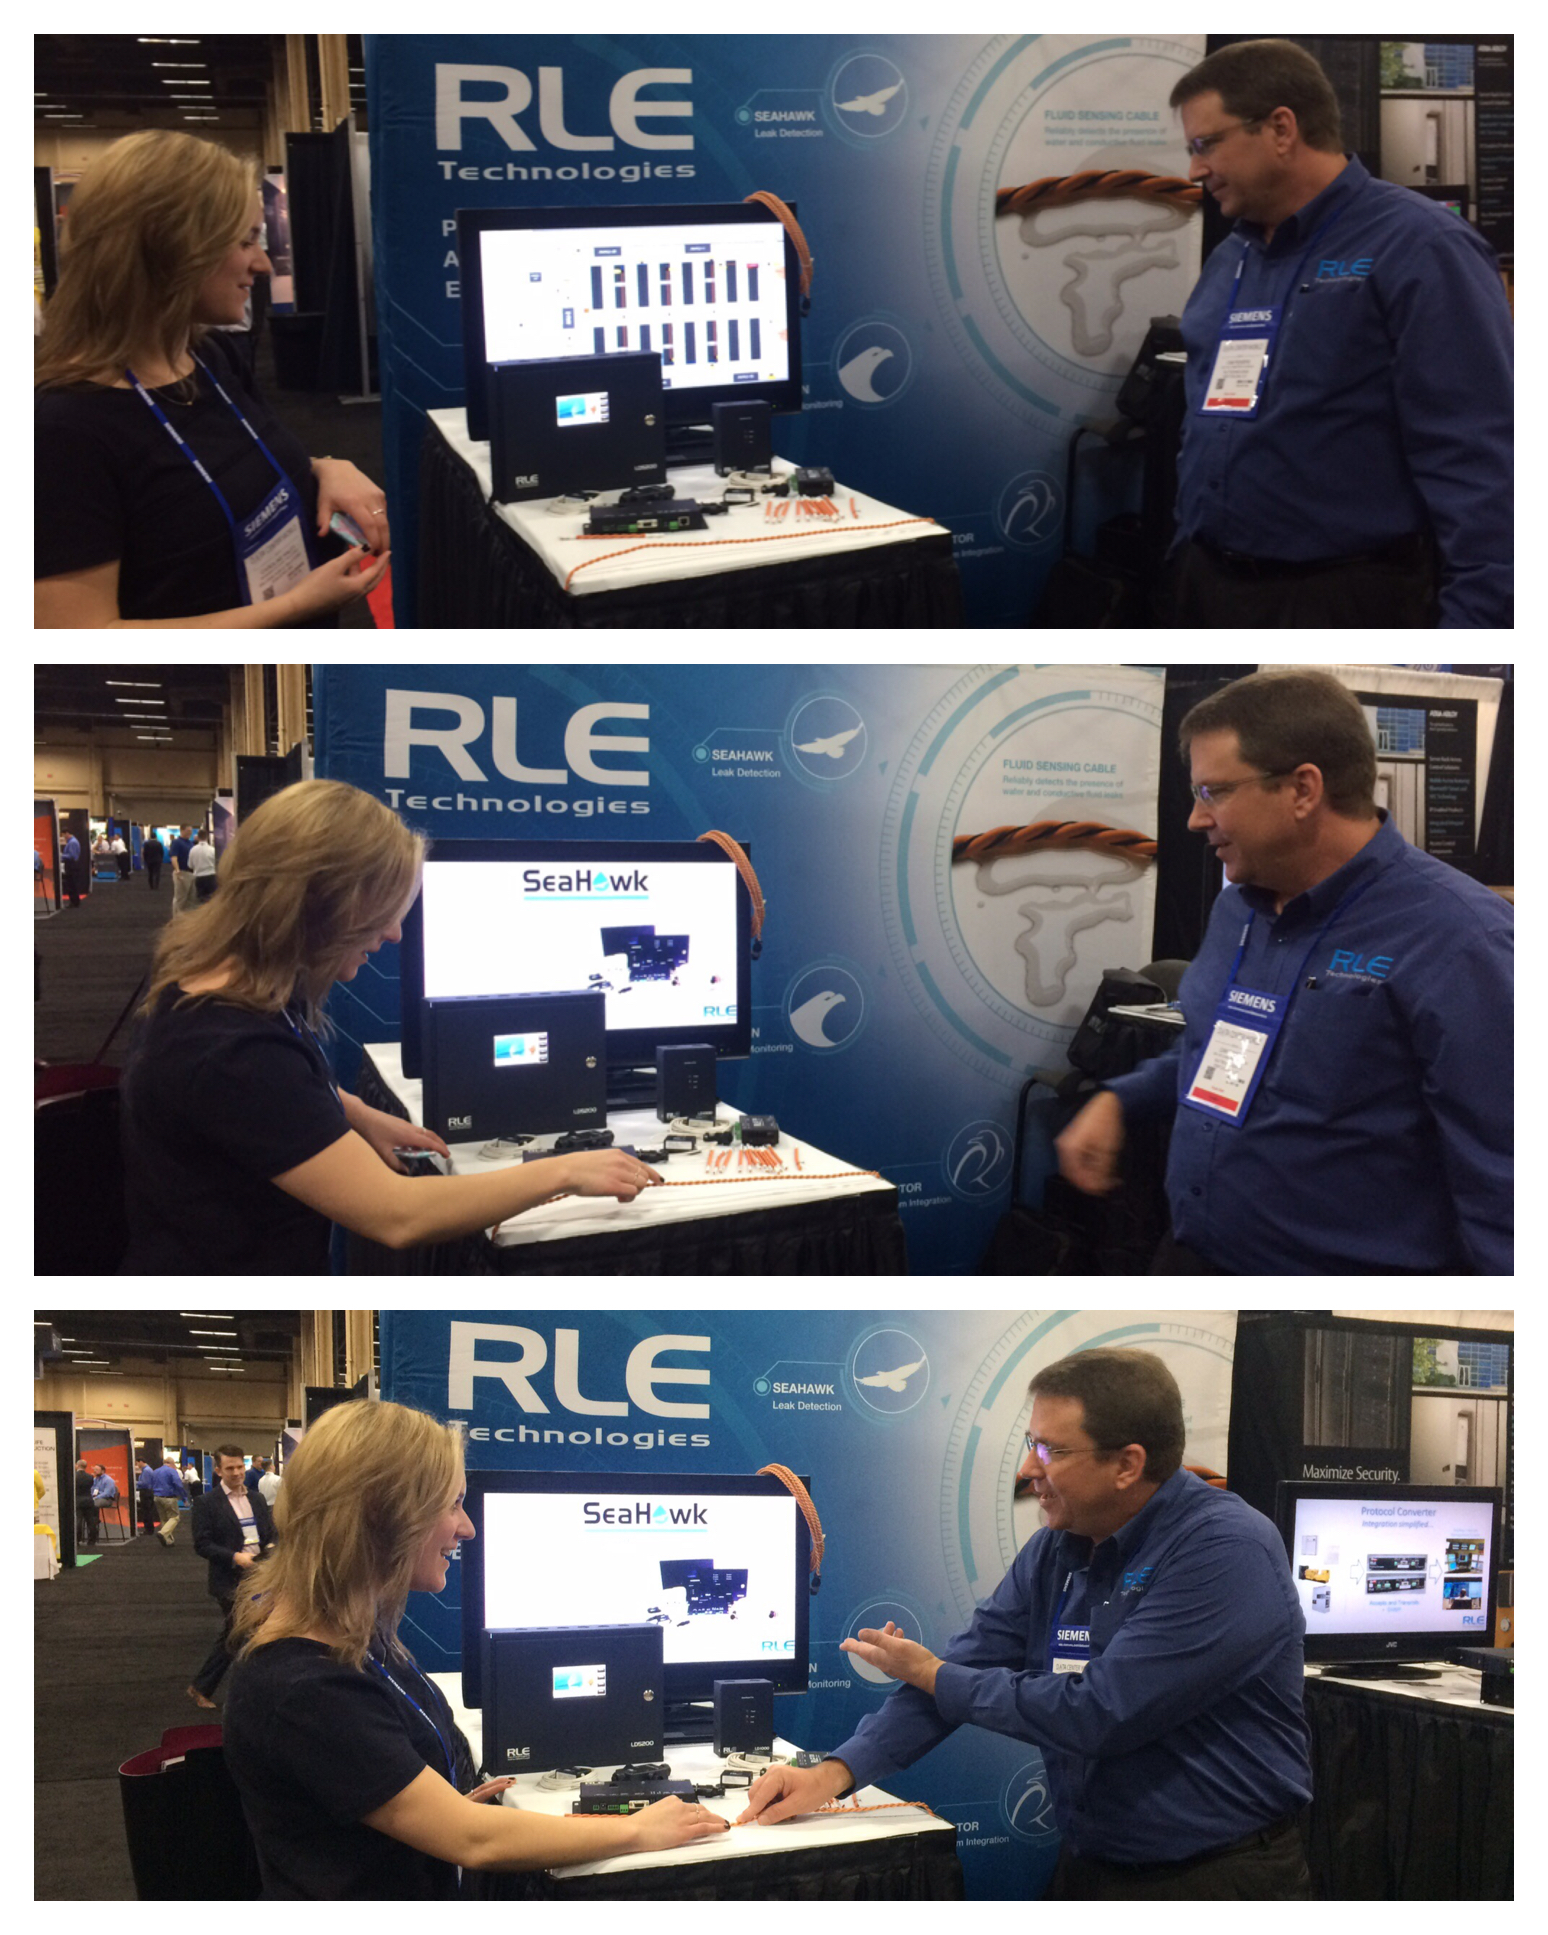 While at the booth, Caroline was treated to a demo on leak detection!